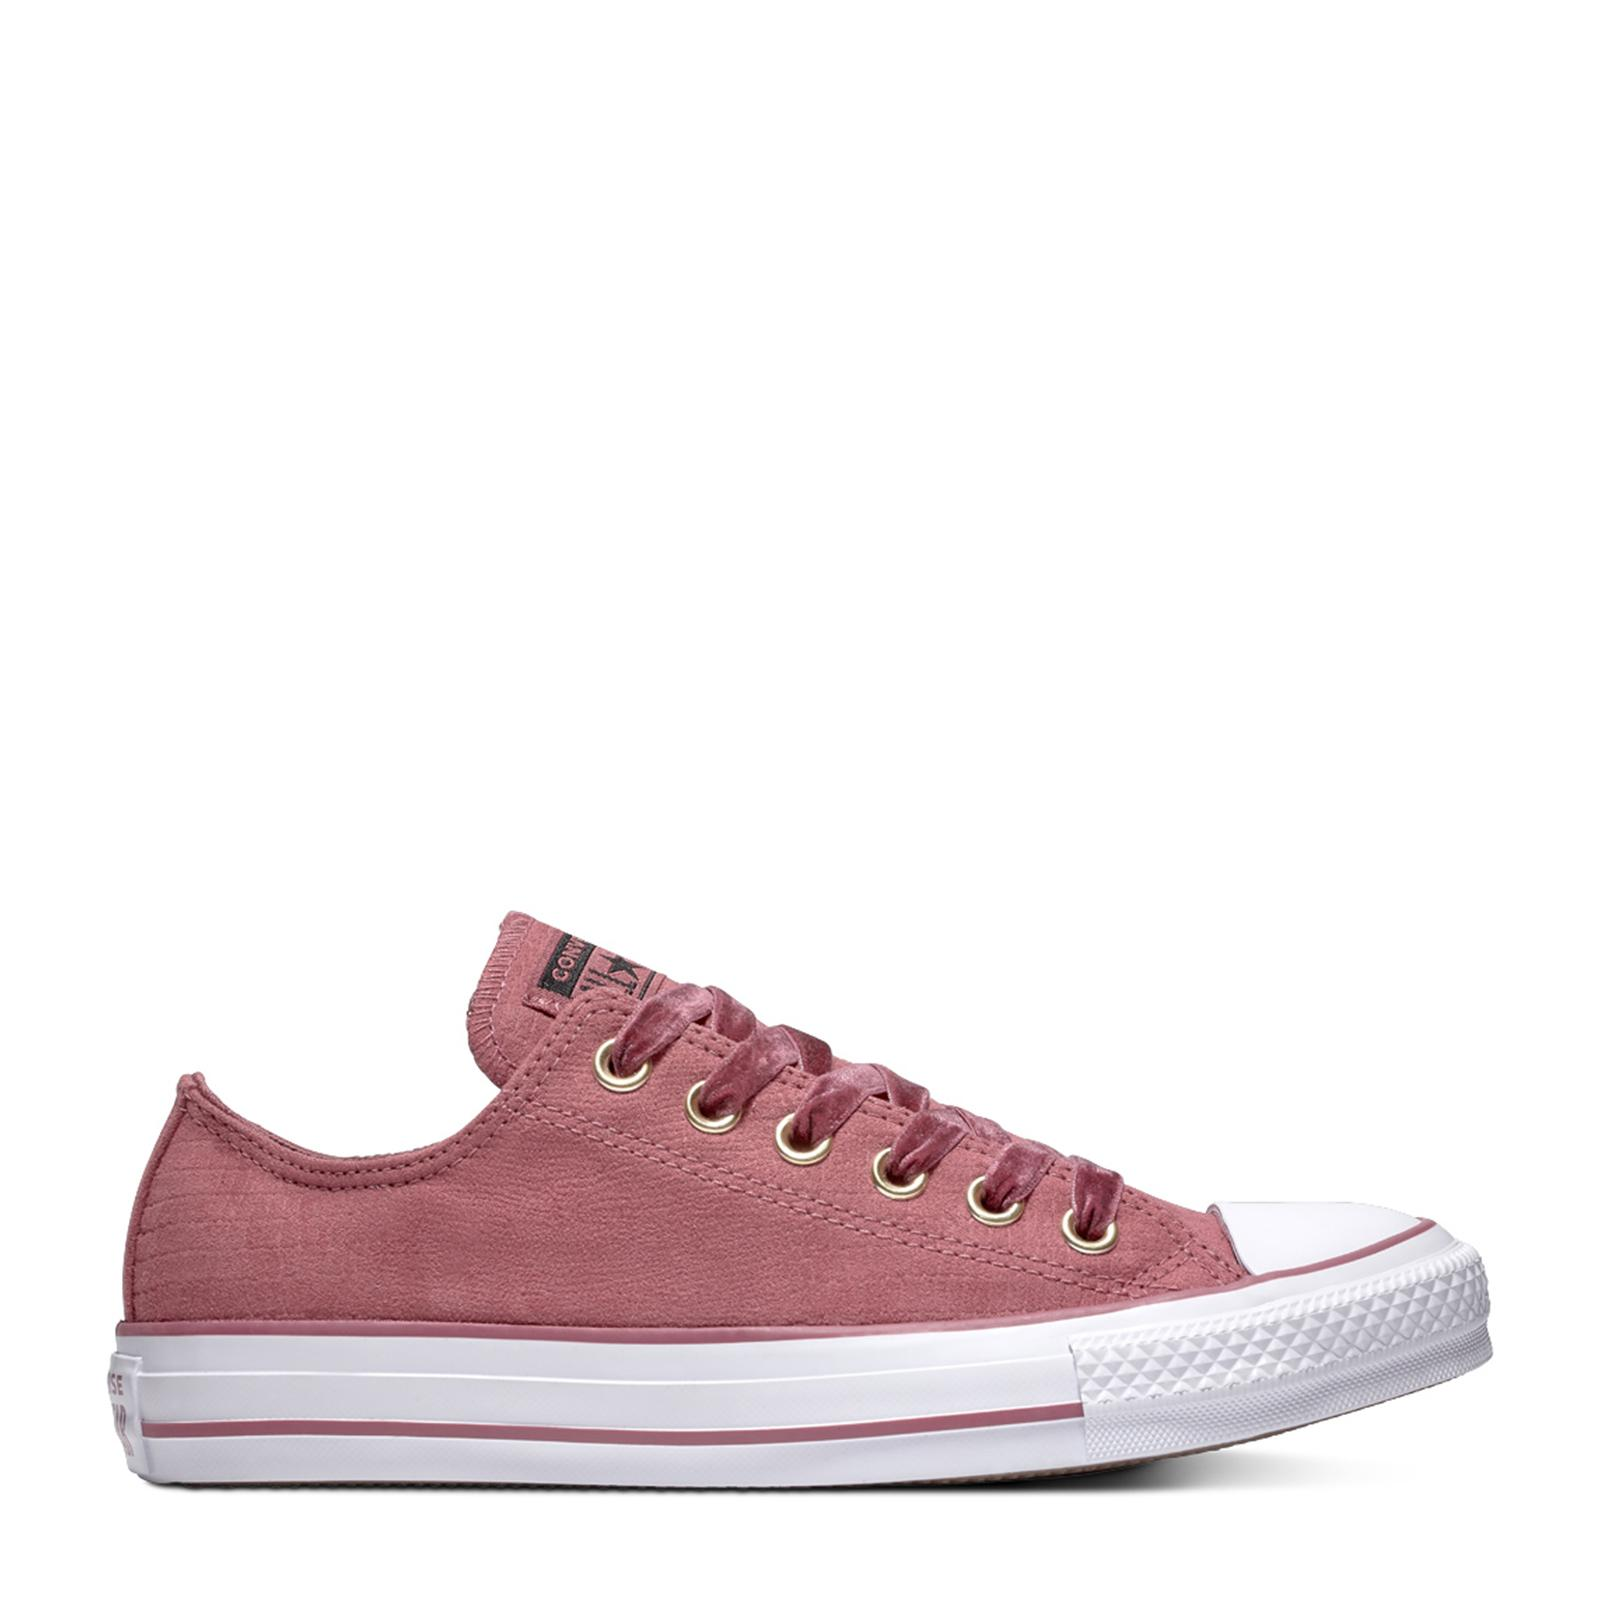 3e76d3298901 CONVERSE CHUCK TAYLOR ALL STAR - OX -VINTAGE WINE VINTAGE WINE - 561706C